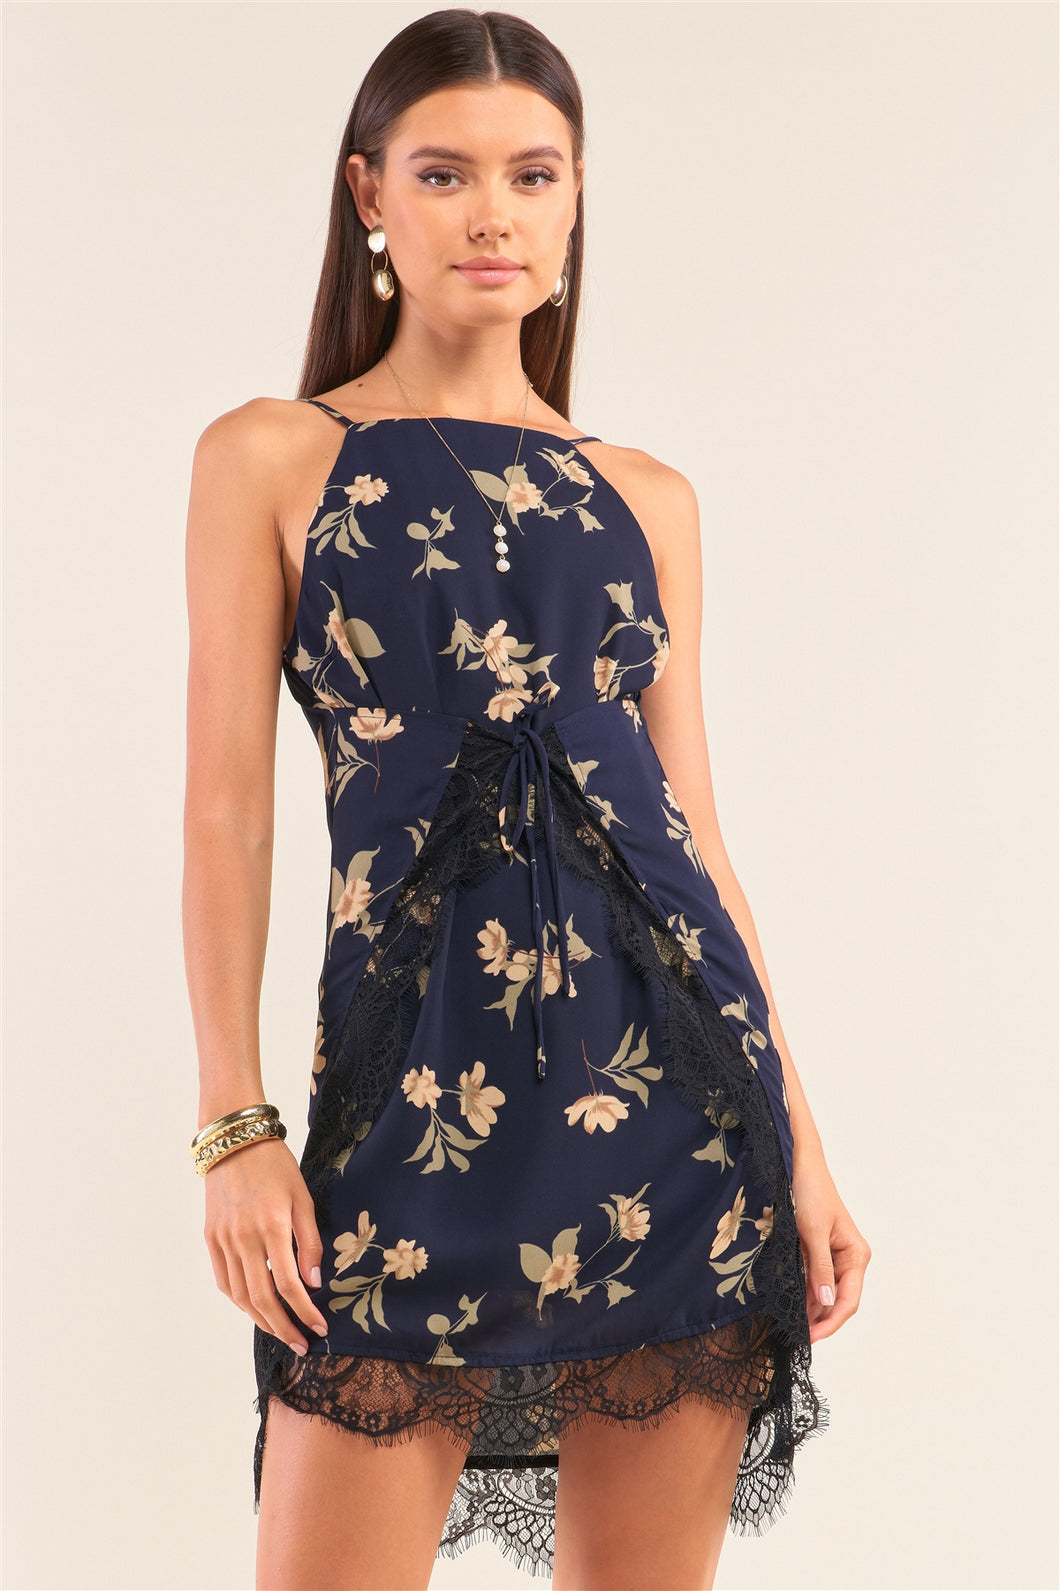 Floral + Lace Trim Halter Neck Sleeveless Dress